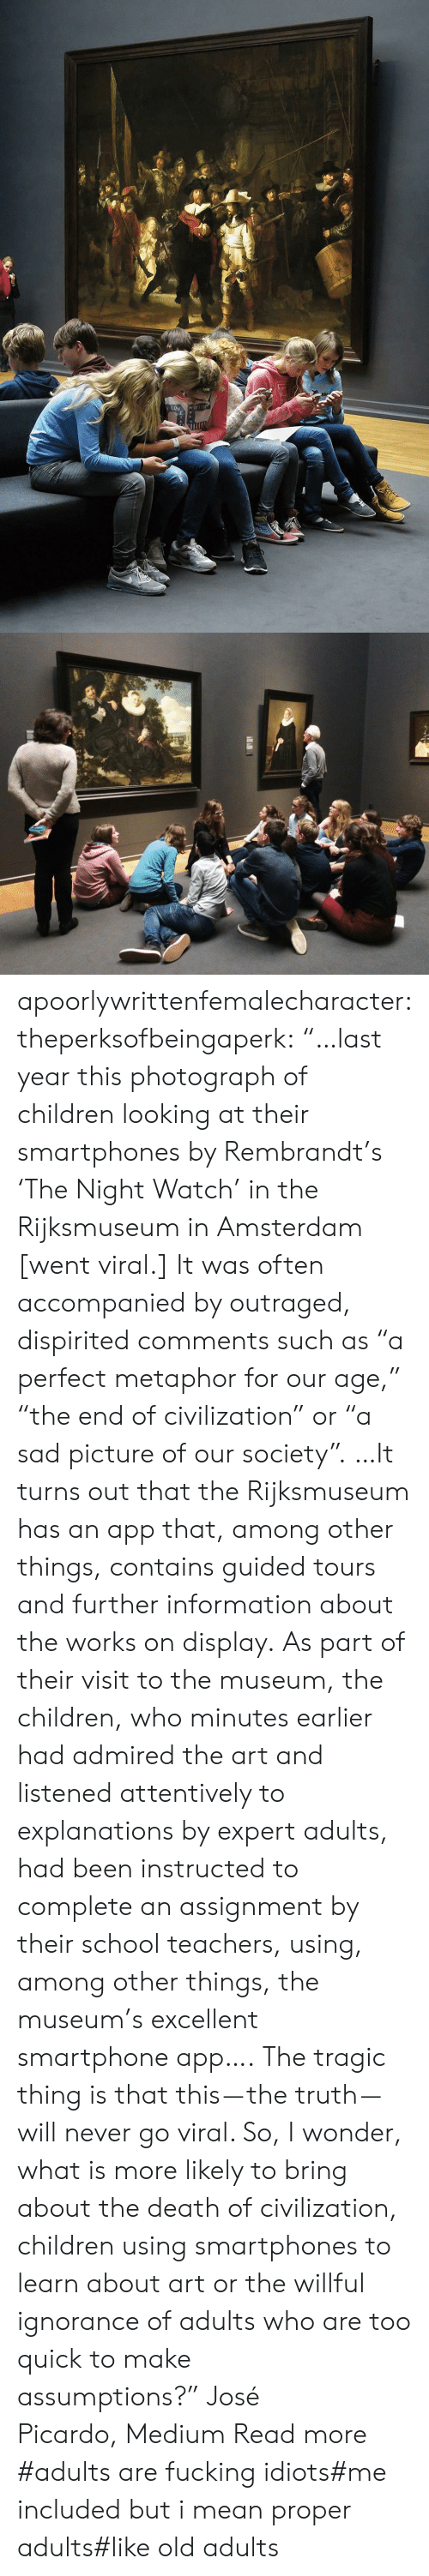 "Outraged: apoorlywrittenfemalecharacter: theperksofbeingaperk:  ""…last year this photograph of children looking at their smartphones by Rembrandt's 'The Night Watch' in the Rijksmuseum in Amsterdam [went viral.] It was often accompanied by outraged, dispirited comments such as ""a perfect metaphor for our age,"" ""the end of civilization"" or ""a sad picture of our society"". …It turns out that the Rijksmuseum has an app that, among other things, contains guided tours and further information about the works on display. As part of their visit to the museum, the children, who minutes earlier had admired the art and listened attentively to explanations by expert adults, had been instructed to complete an assignment by their school teachers, using, among other things, the museum's excellent smartphone app….   The tragic thing is that this — the truth — will never go viral. So, I wonder, what is more likely to bring about the death of civilization, children using smartphones to learn about art or the willful ignorance of adults who are too quick to make assumptions?"" José Picardo, Medium Read more    #adults are fucking idiots#me included but i mean proper adults#like old adults"